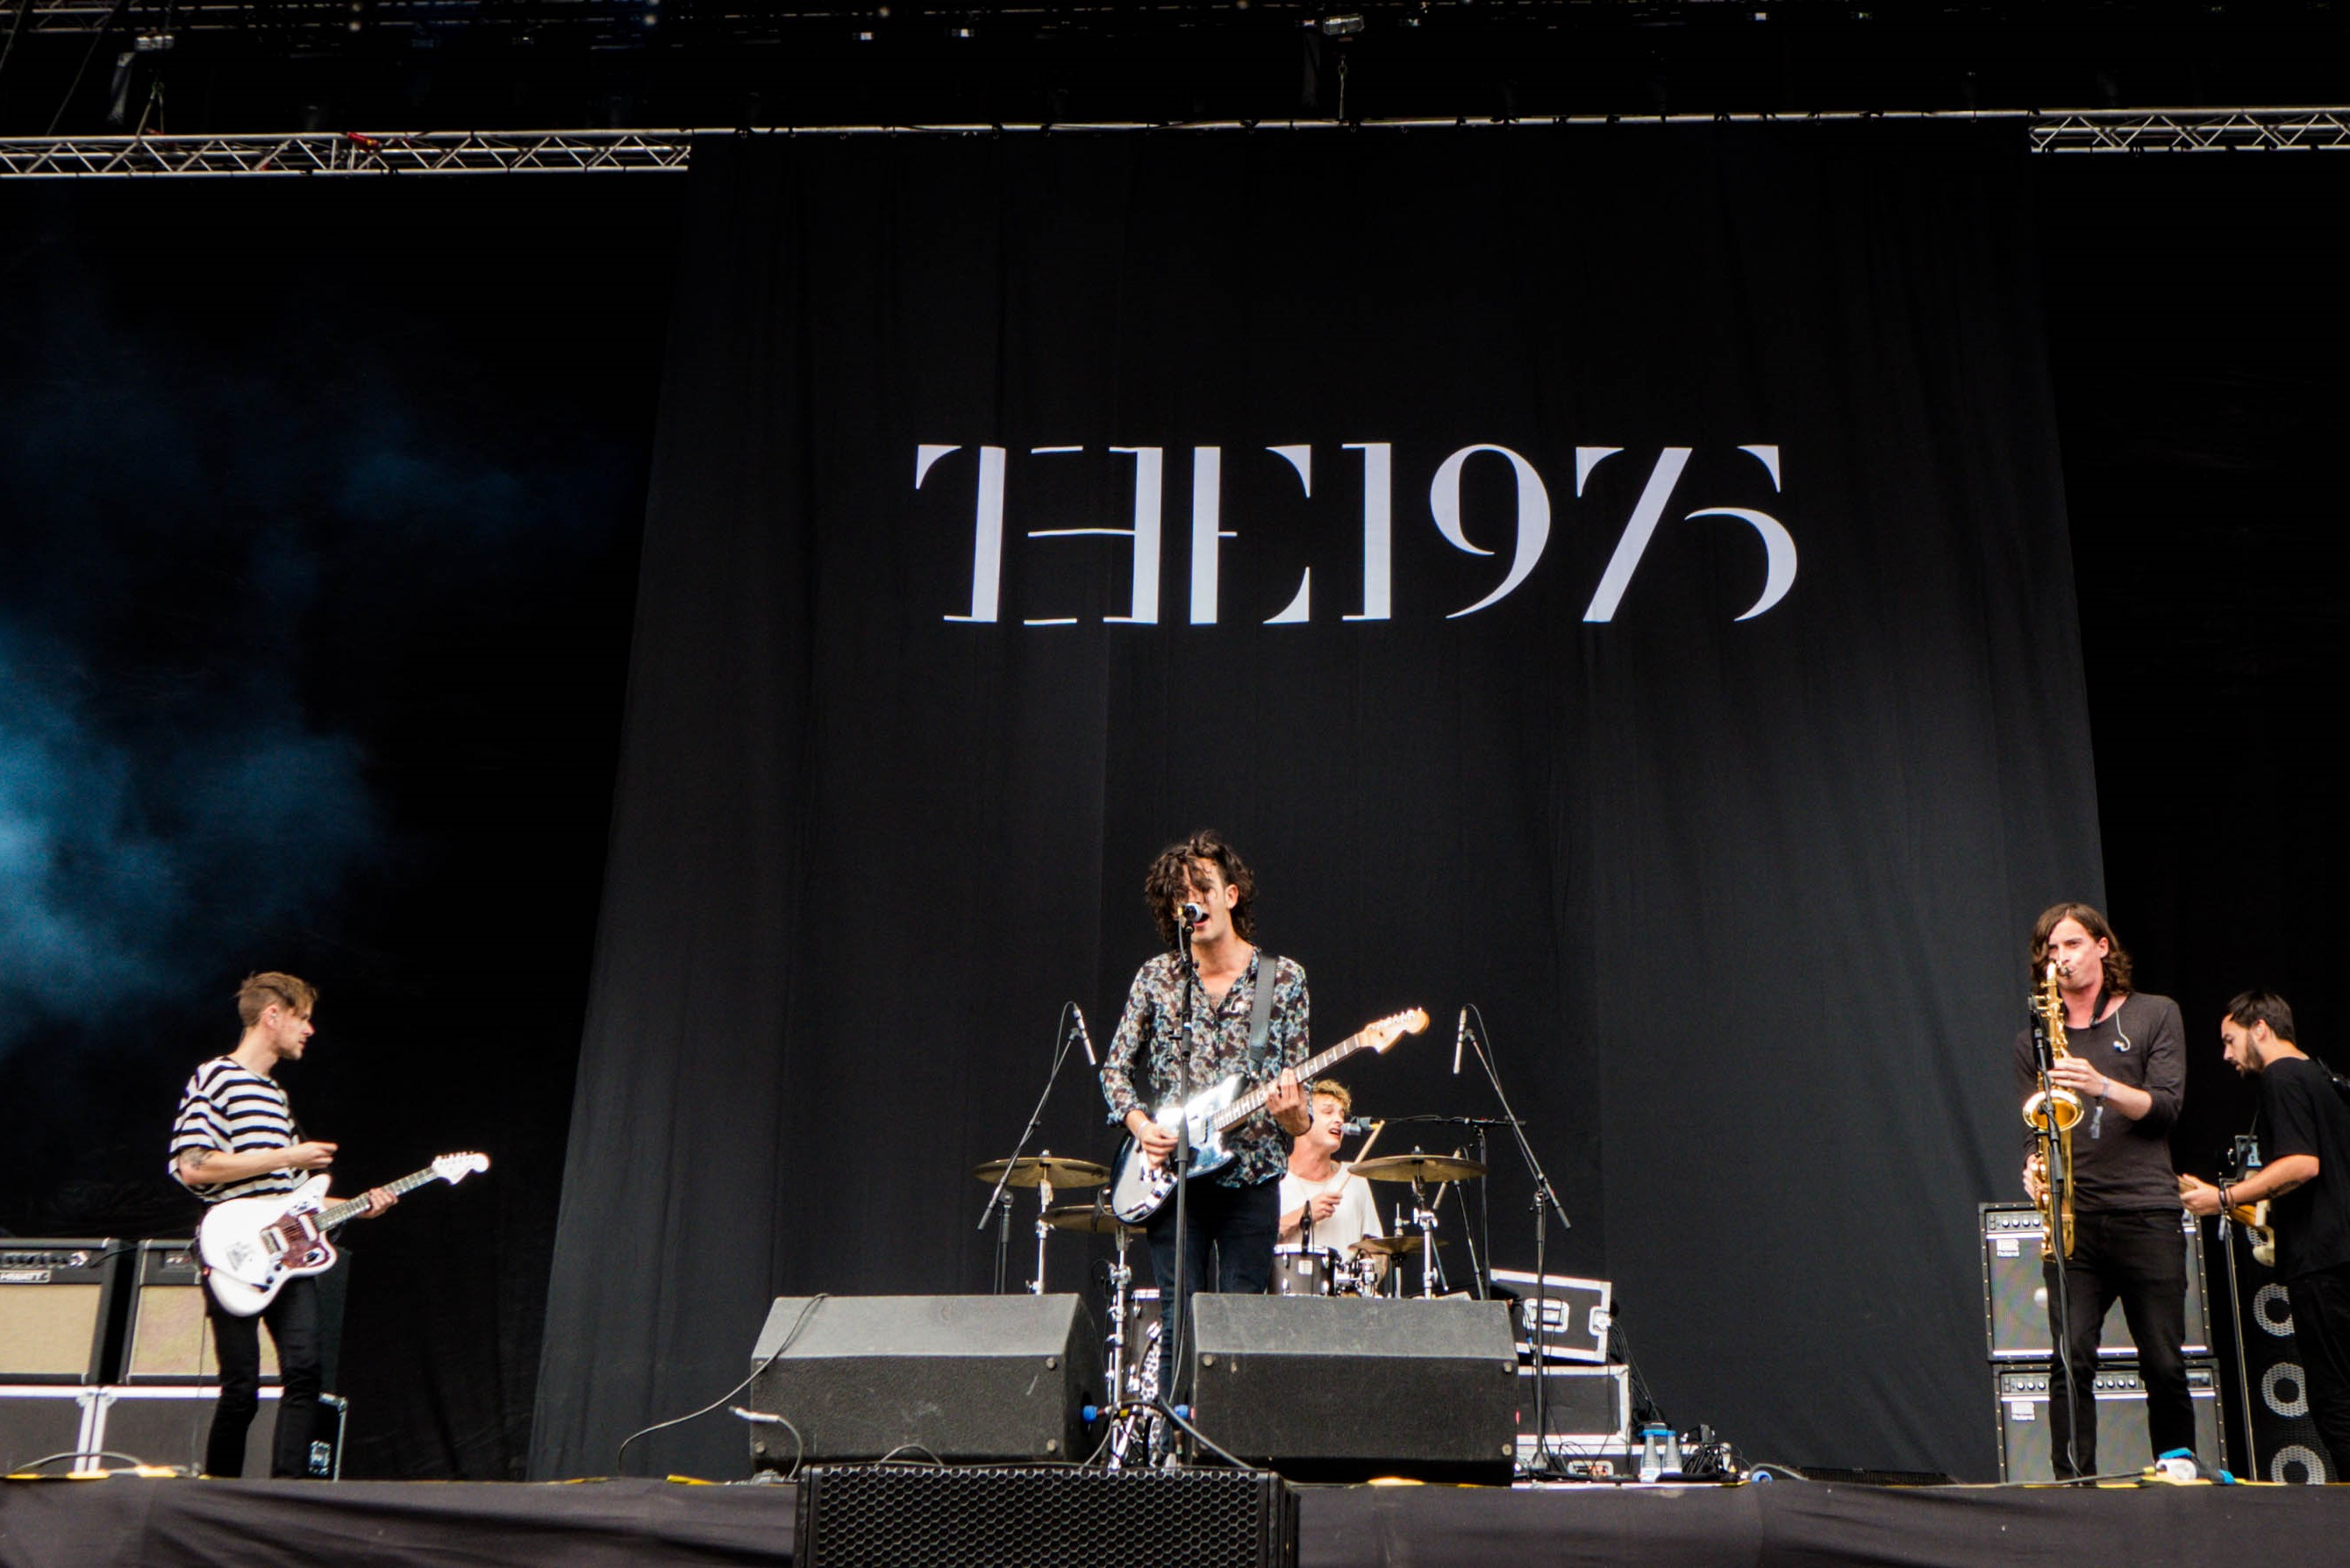 the-1975-bellahouston-park-25th-august-2019